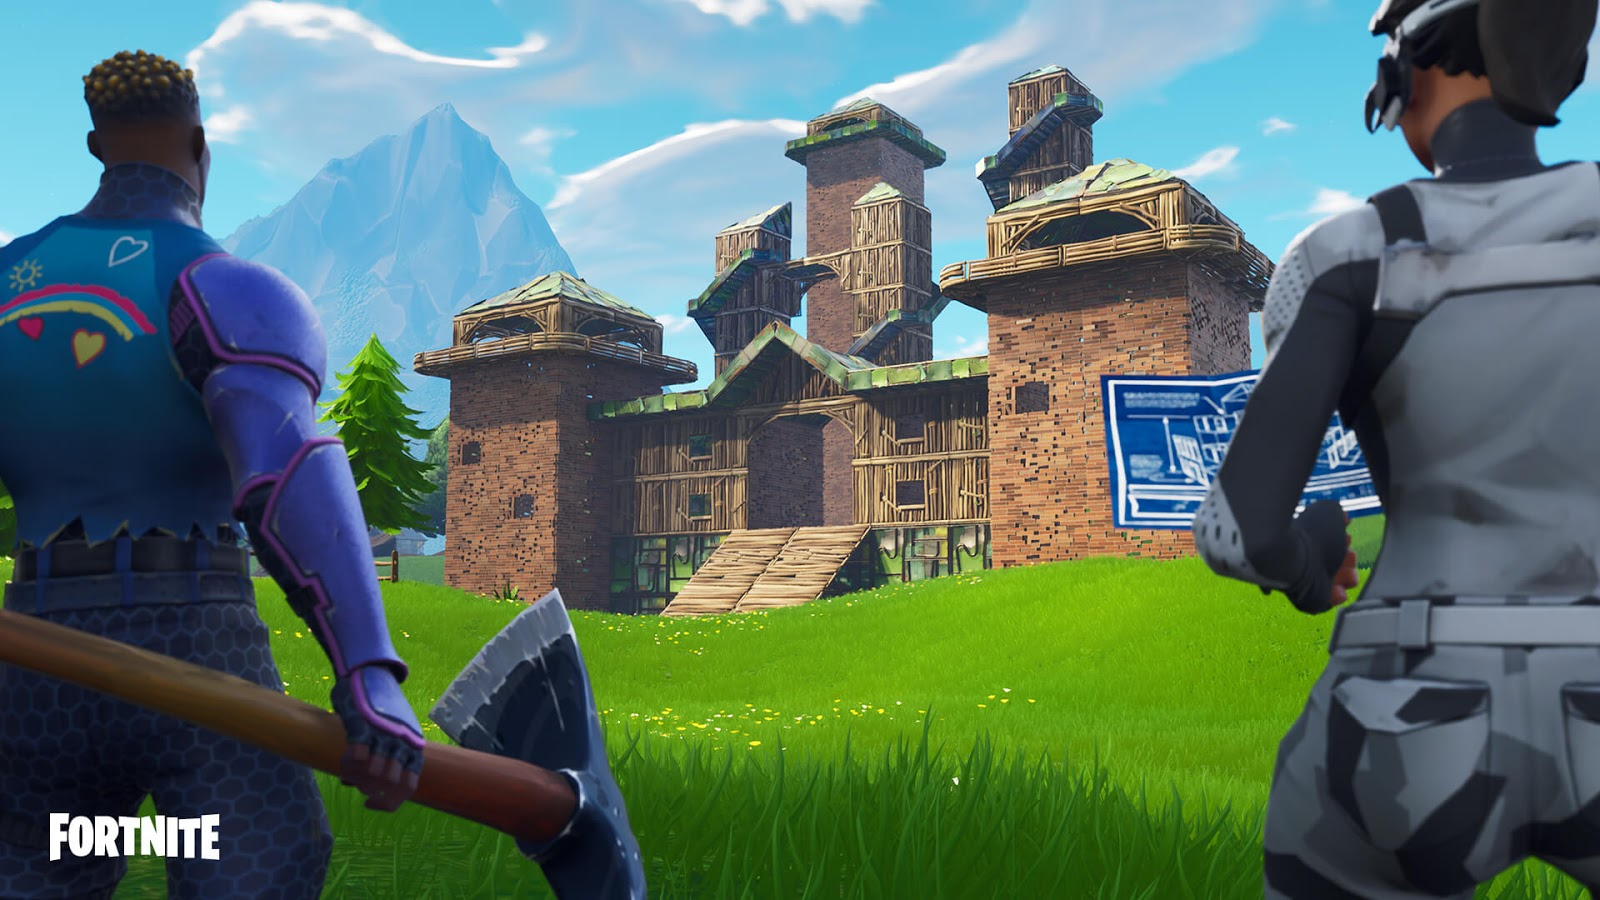 Fortnite V6.01 Patch Notes: Chiller, Limited Time Mode: Playground, And More